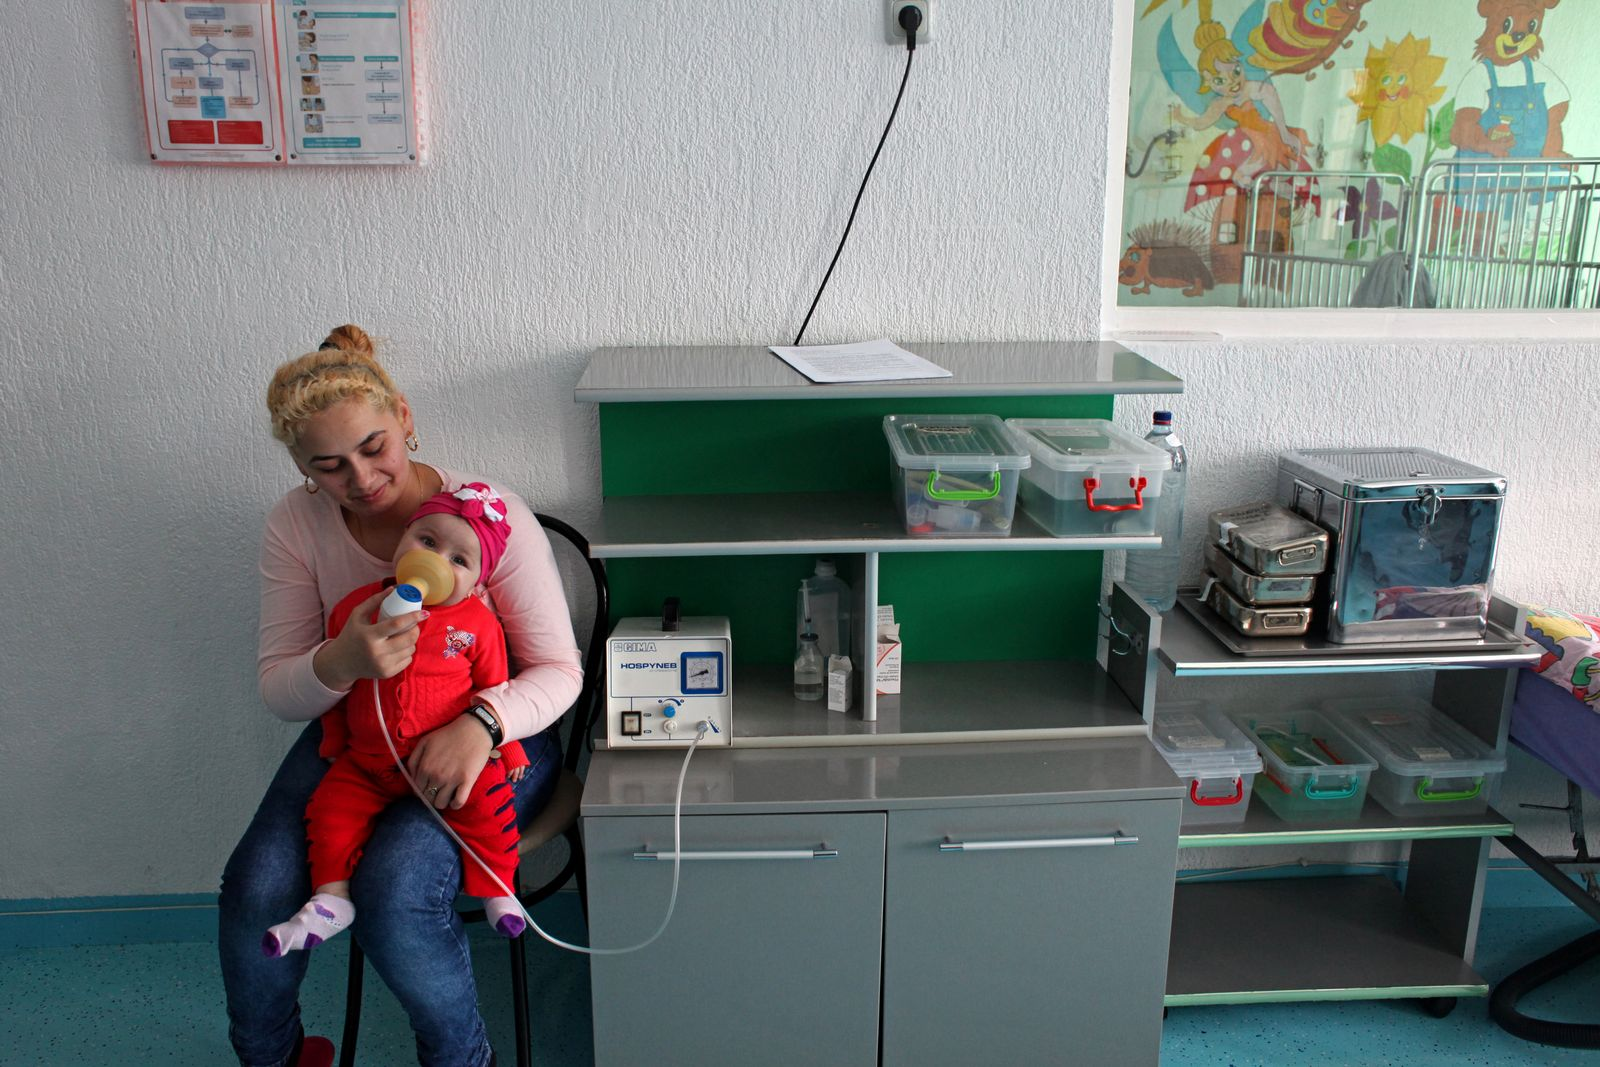 The Wider Image: Romania's healthcare exodus